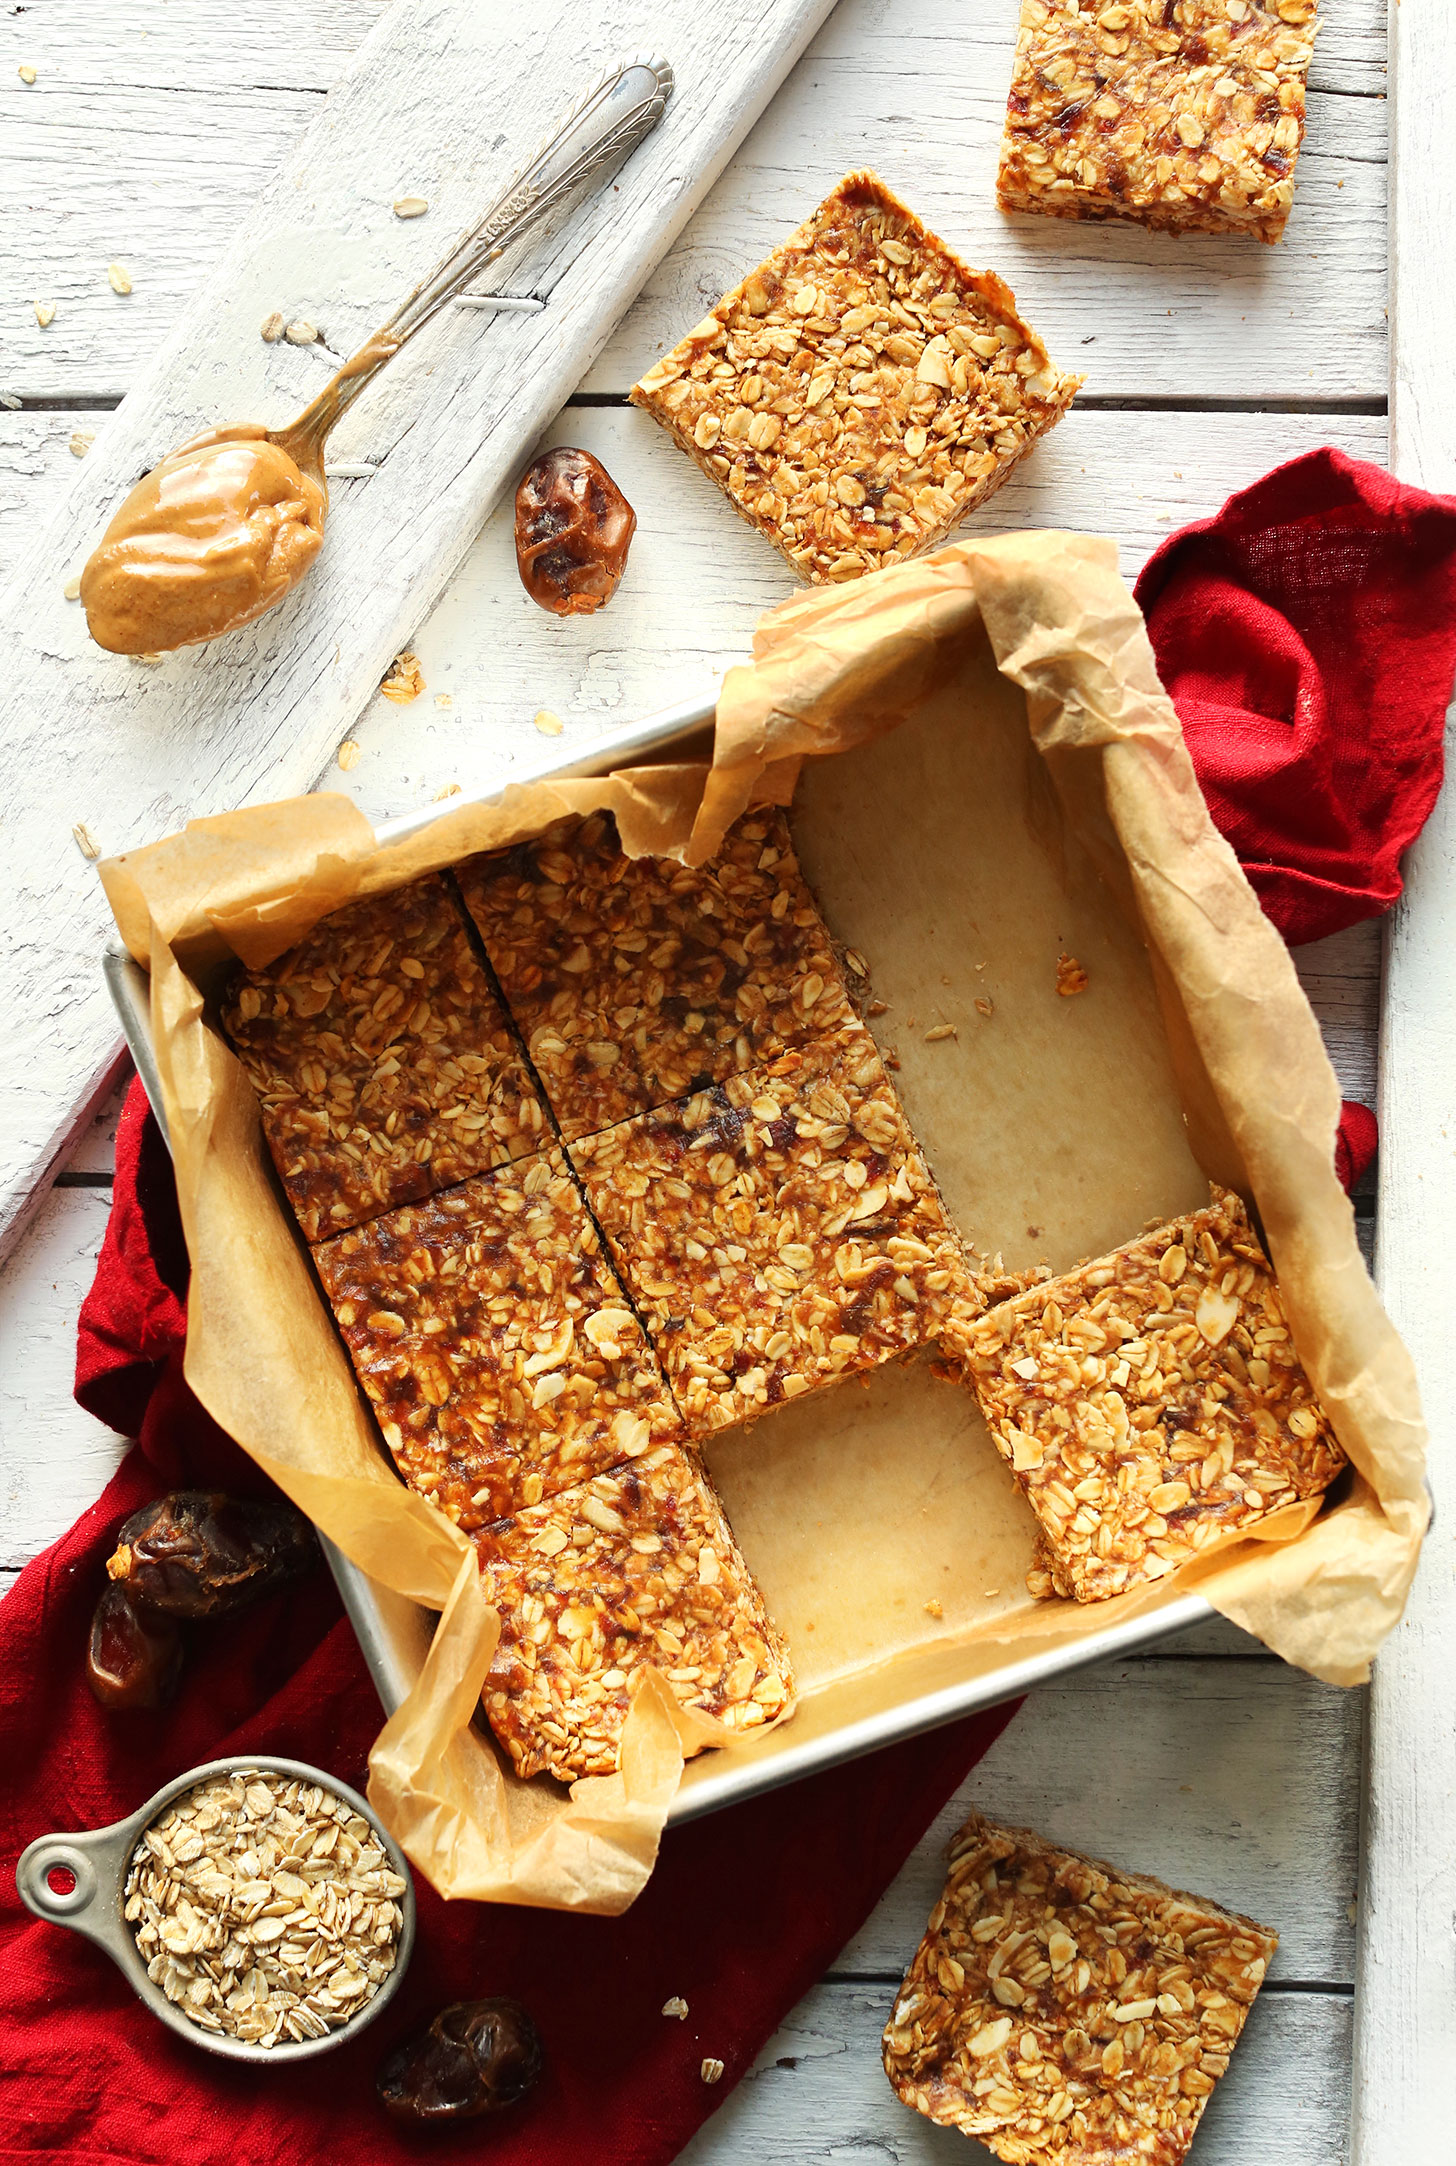 Parchment Lined Baking Pan With Our Gluten Free Vegan Peanut Butter Granola  Bars